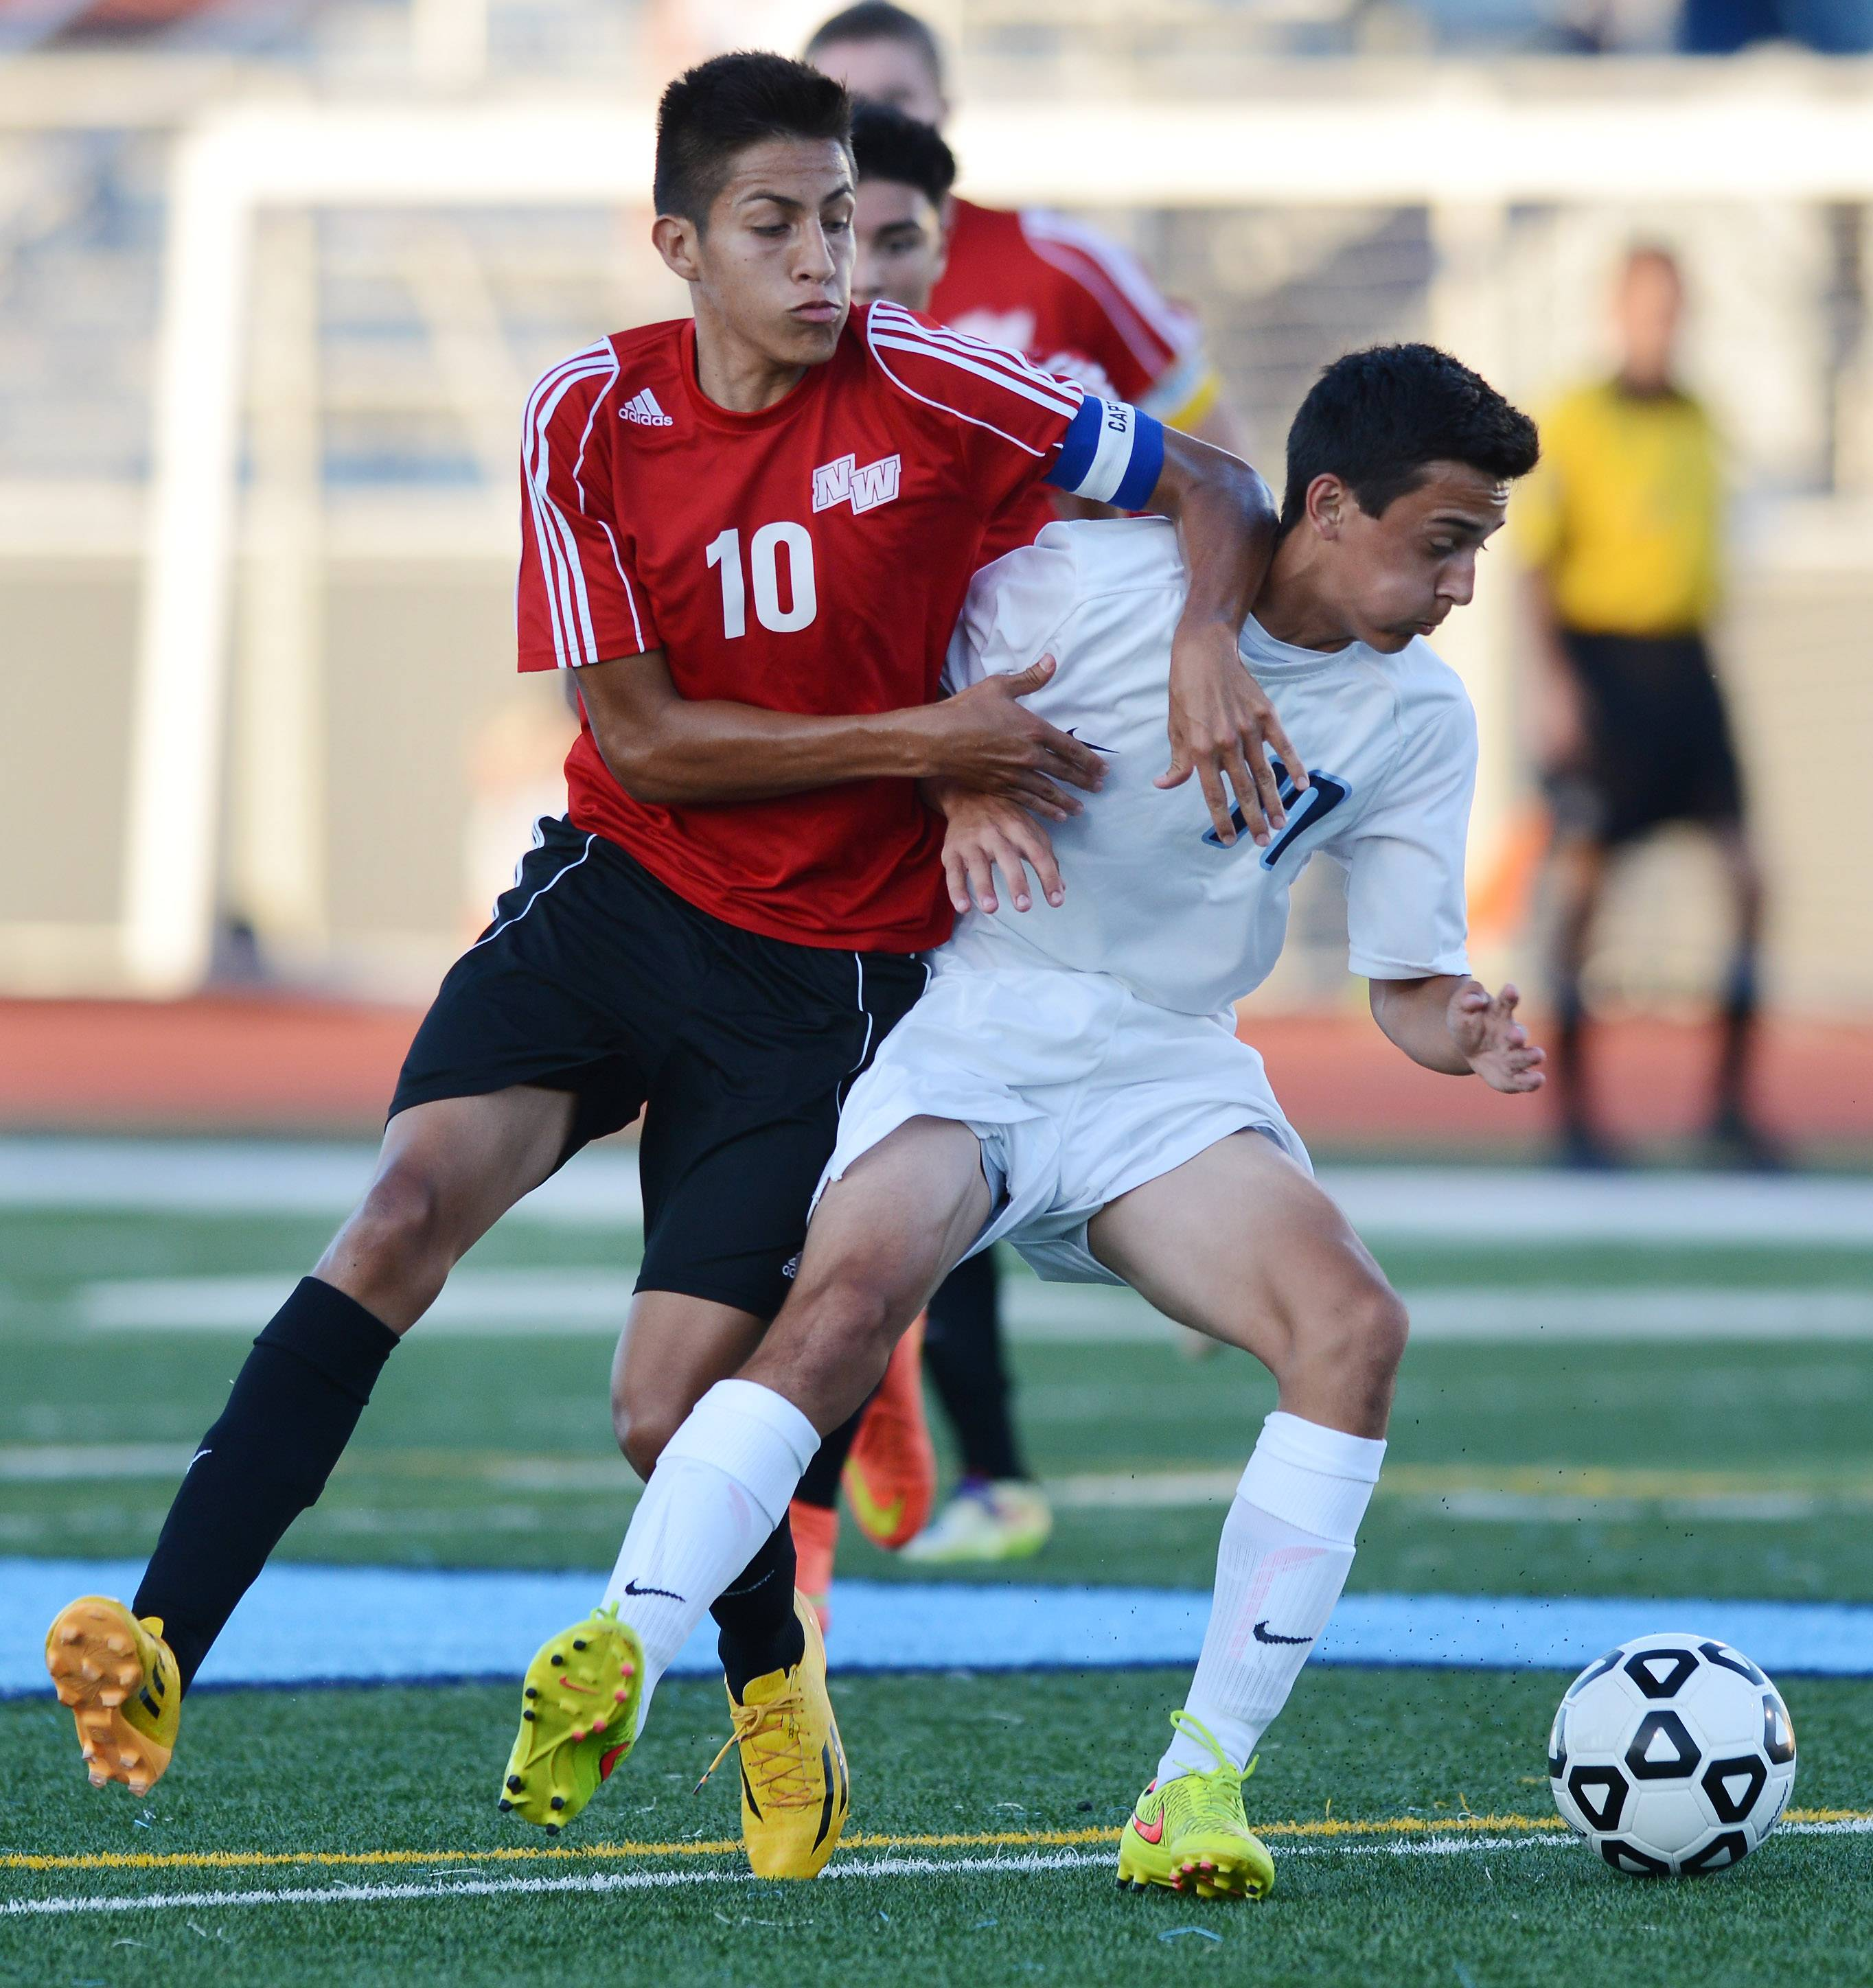 Anthony Morales of Niles West tries to get past Ross LaCamera of Prospect during Tuesday's game in Mount Prospect.